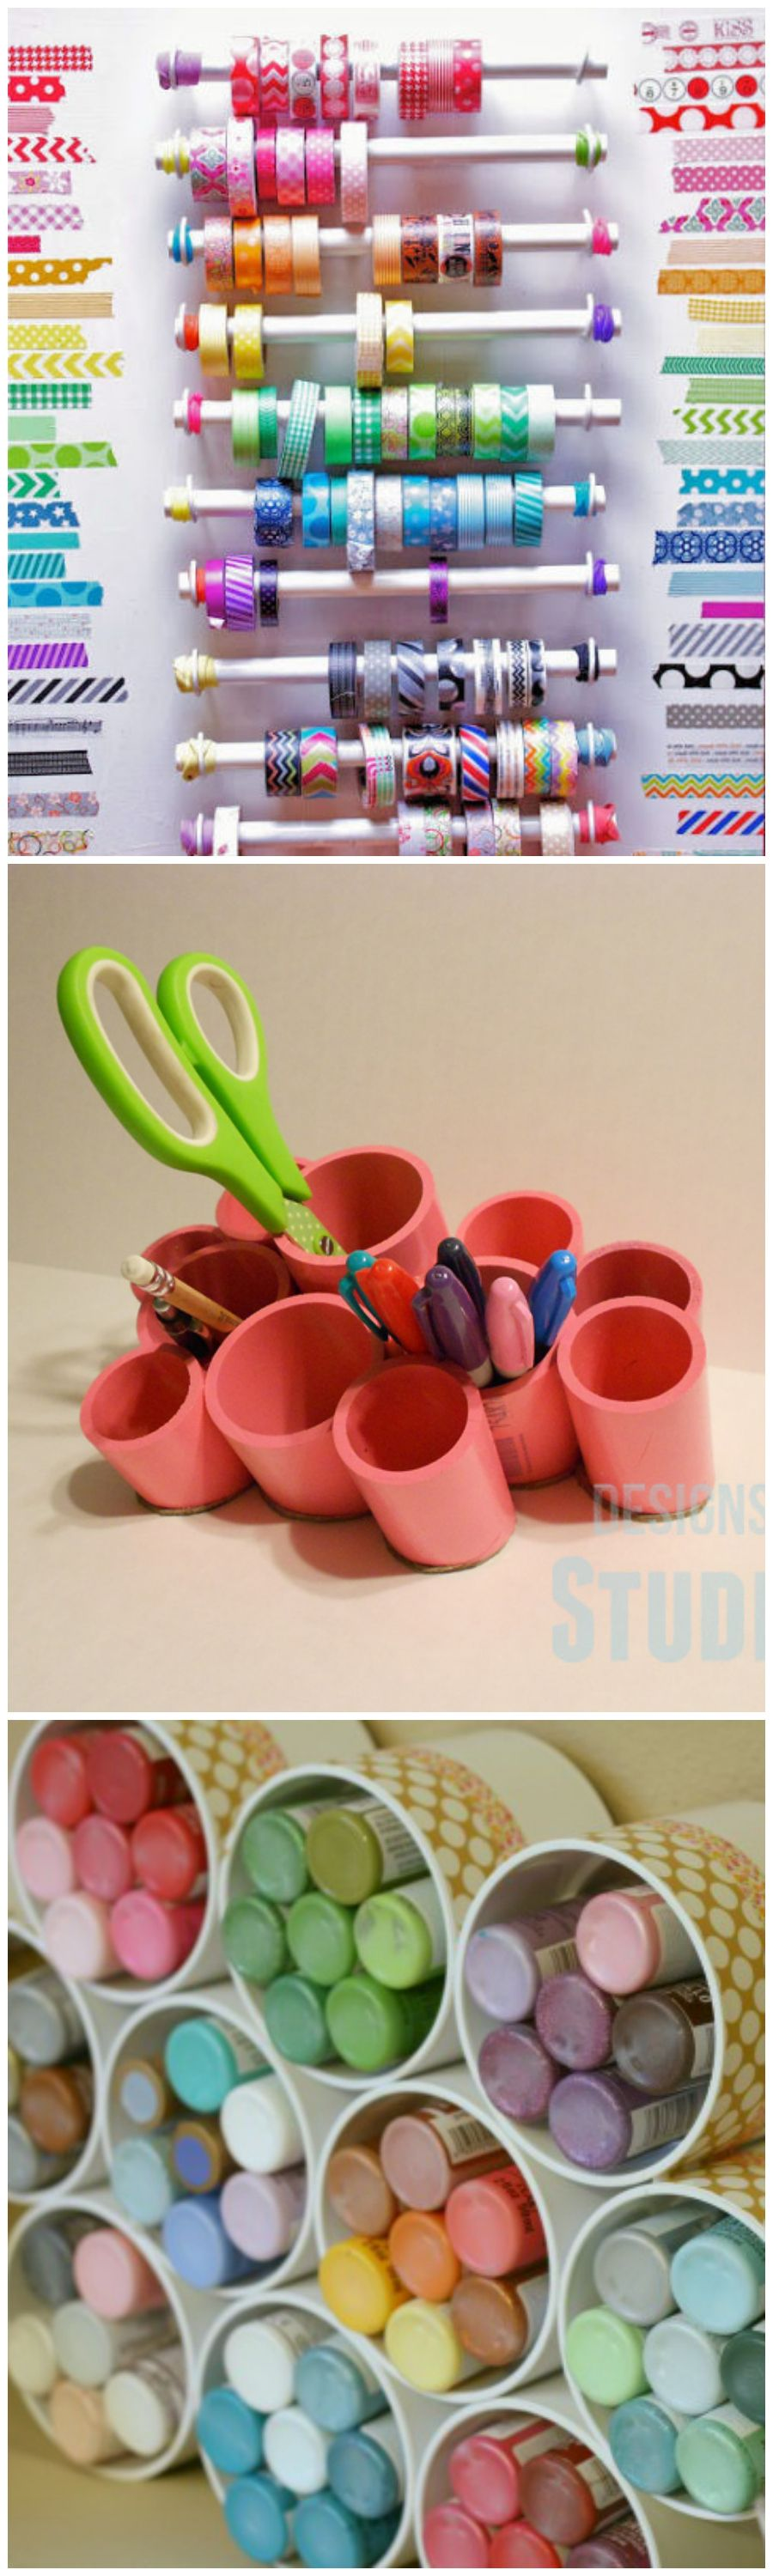 Use PVC Pipes to Organize Your Craft Room - Ribbon Racks, Desktop Organizer, and Paint Tube Storage